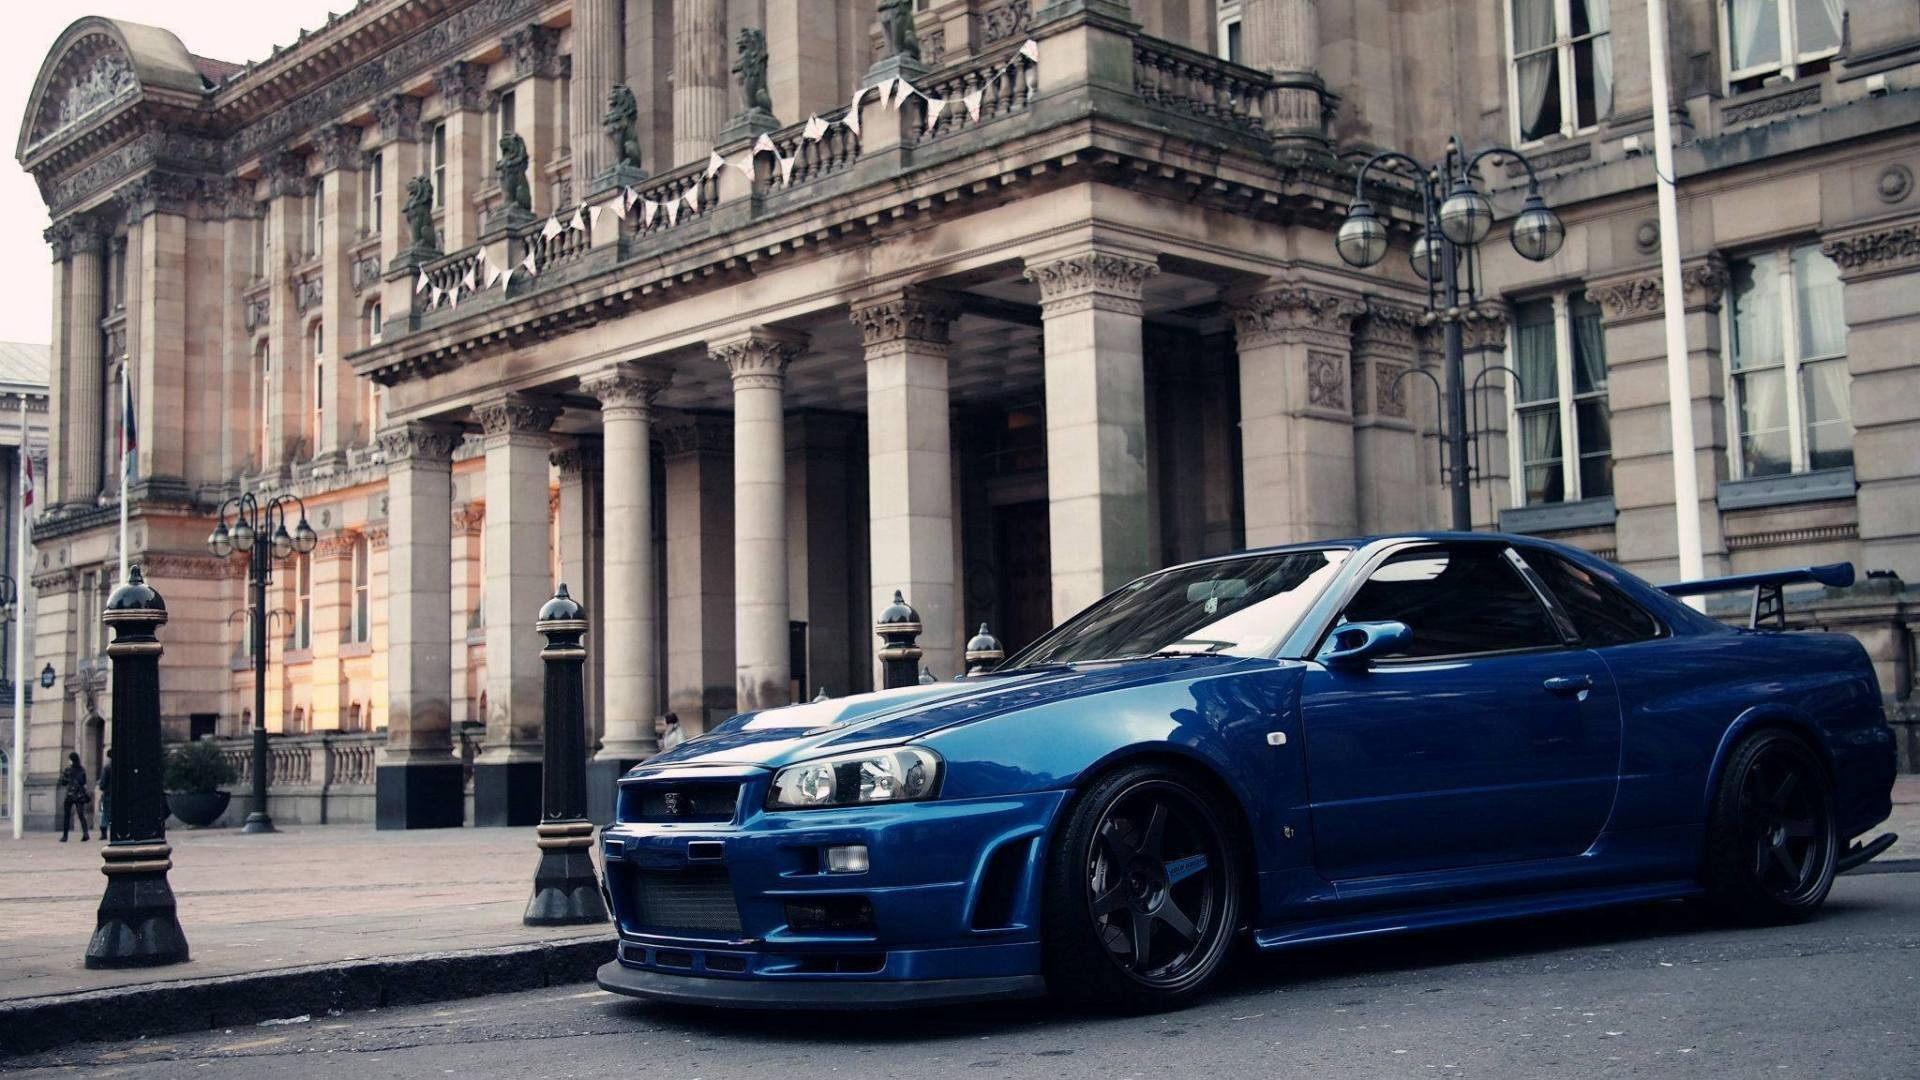 Nissan Skyline Gtr Wallpaper Full HD White Widescreen Iphone Blue Nismo :  Archived at Car Wallpaper – Slhando.com Nissan Skyline GTR Wallpapers | A…  …